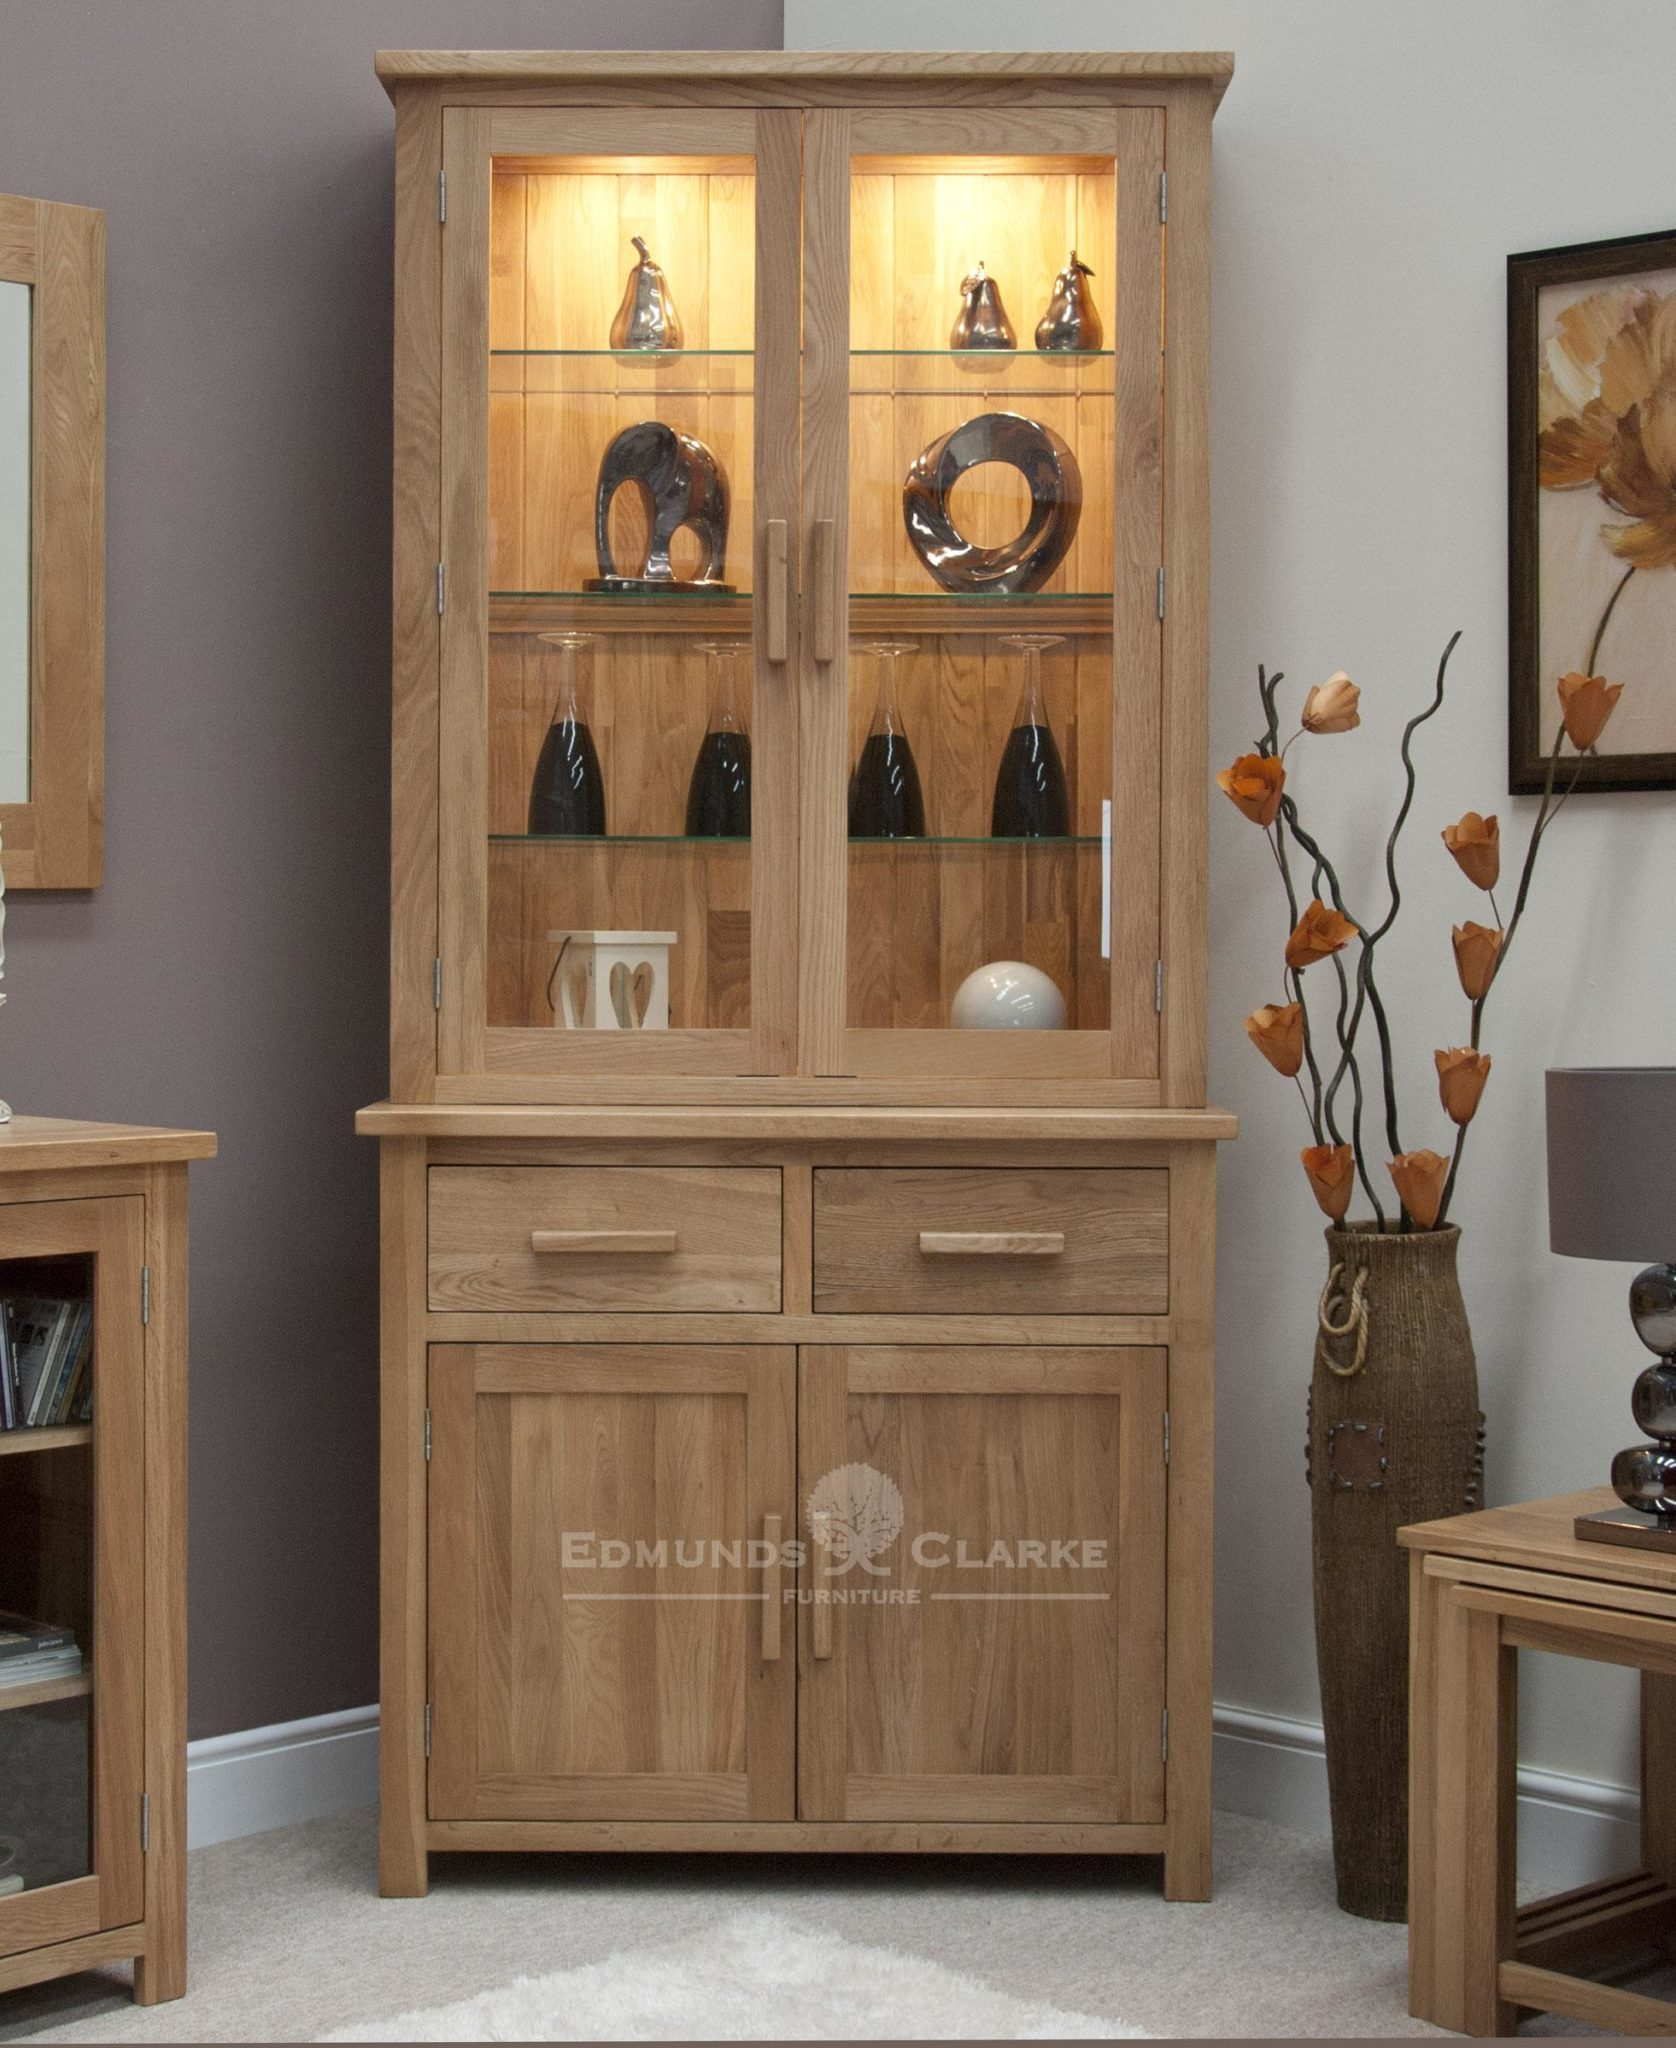 Bury Small oak dresser, 2 drawers, bevelled glass doors with adjustable shelves and cupboard underneath, chrome handles as standard or oak bar handles available as extra